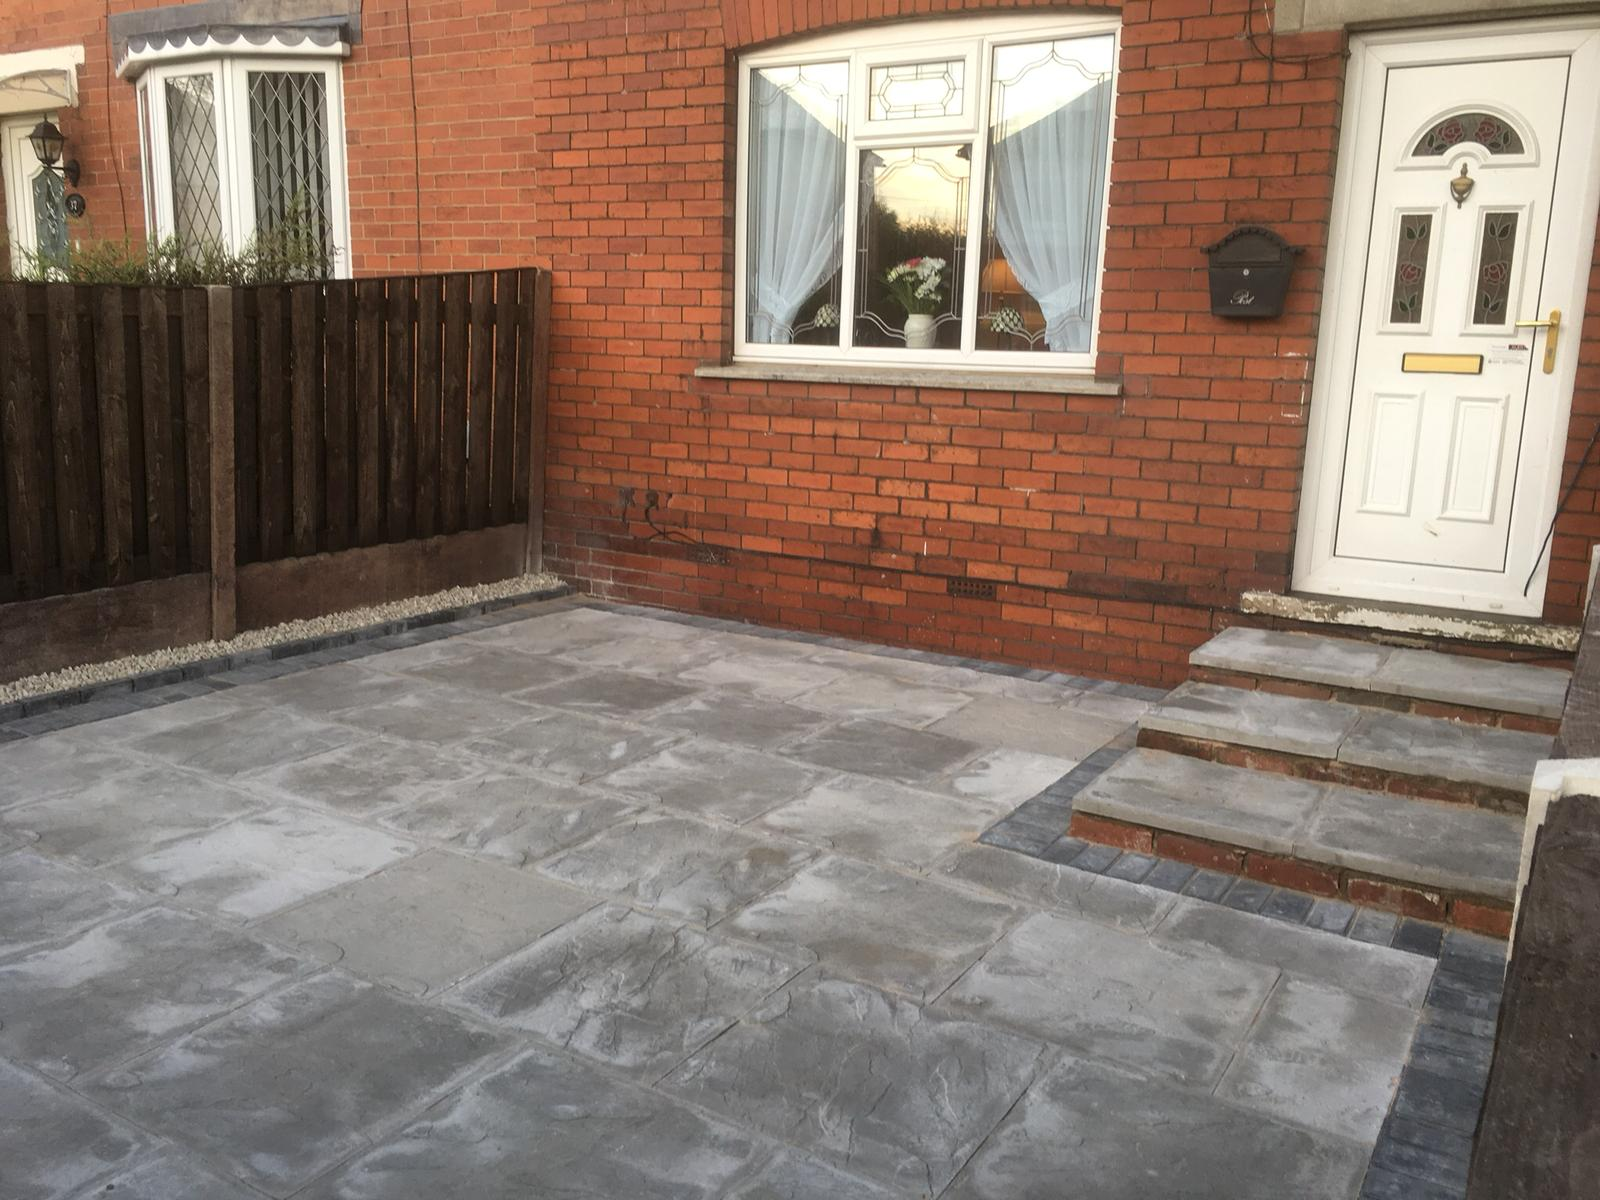 Completed patio project